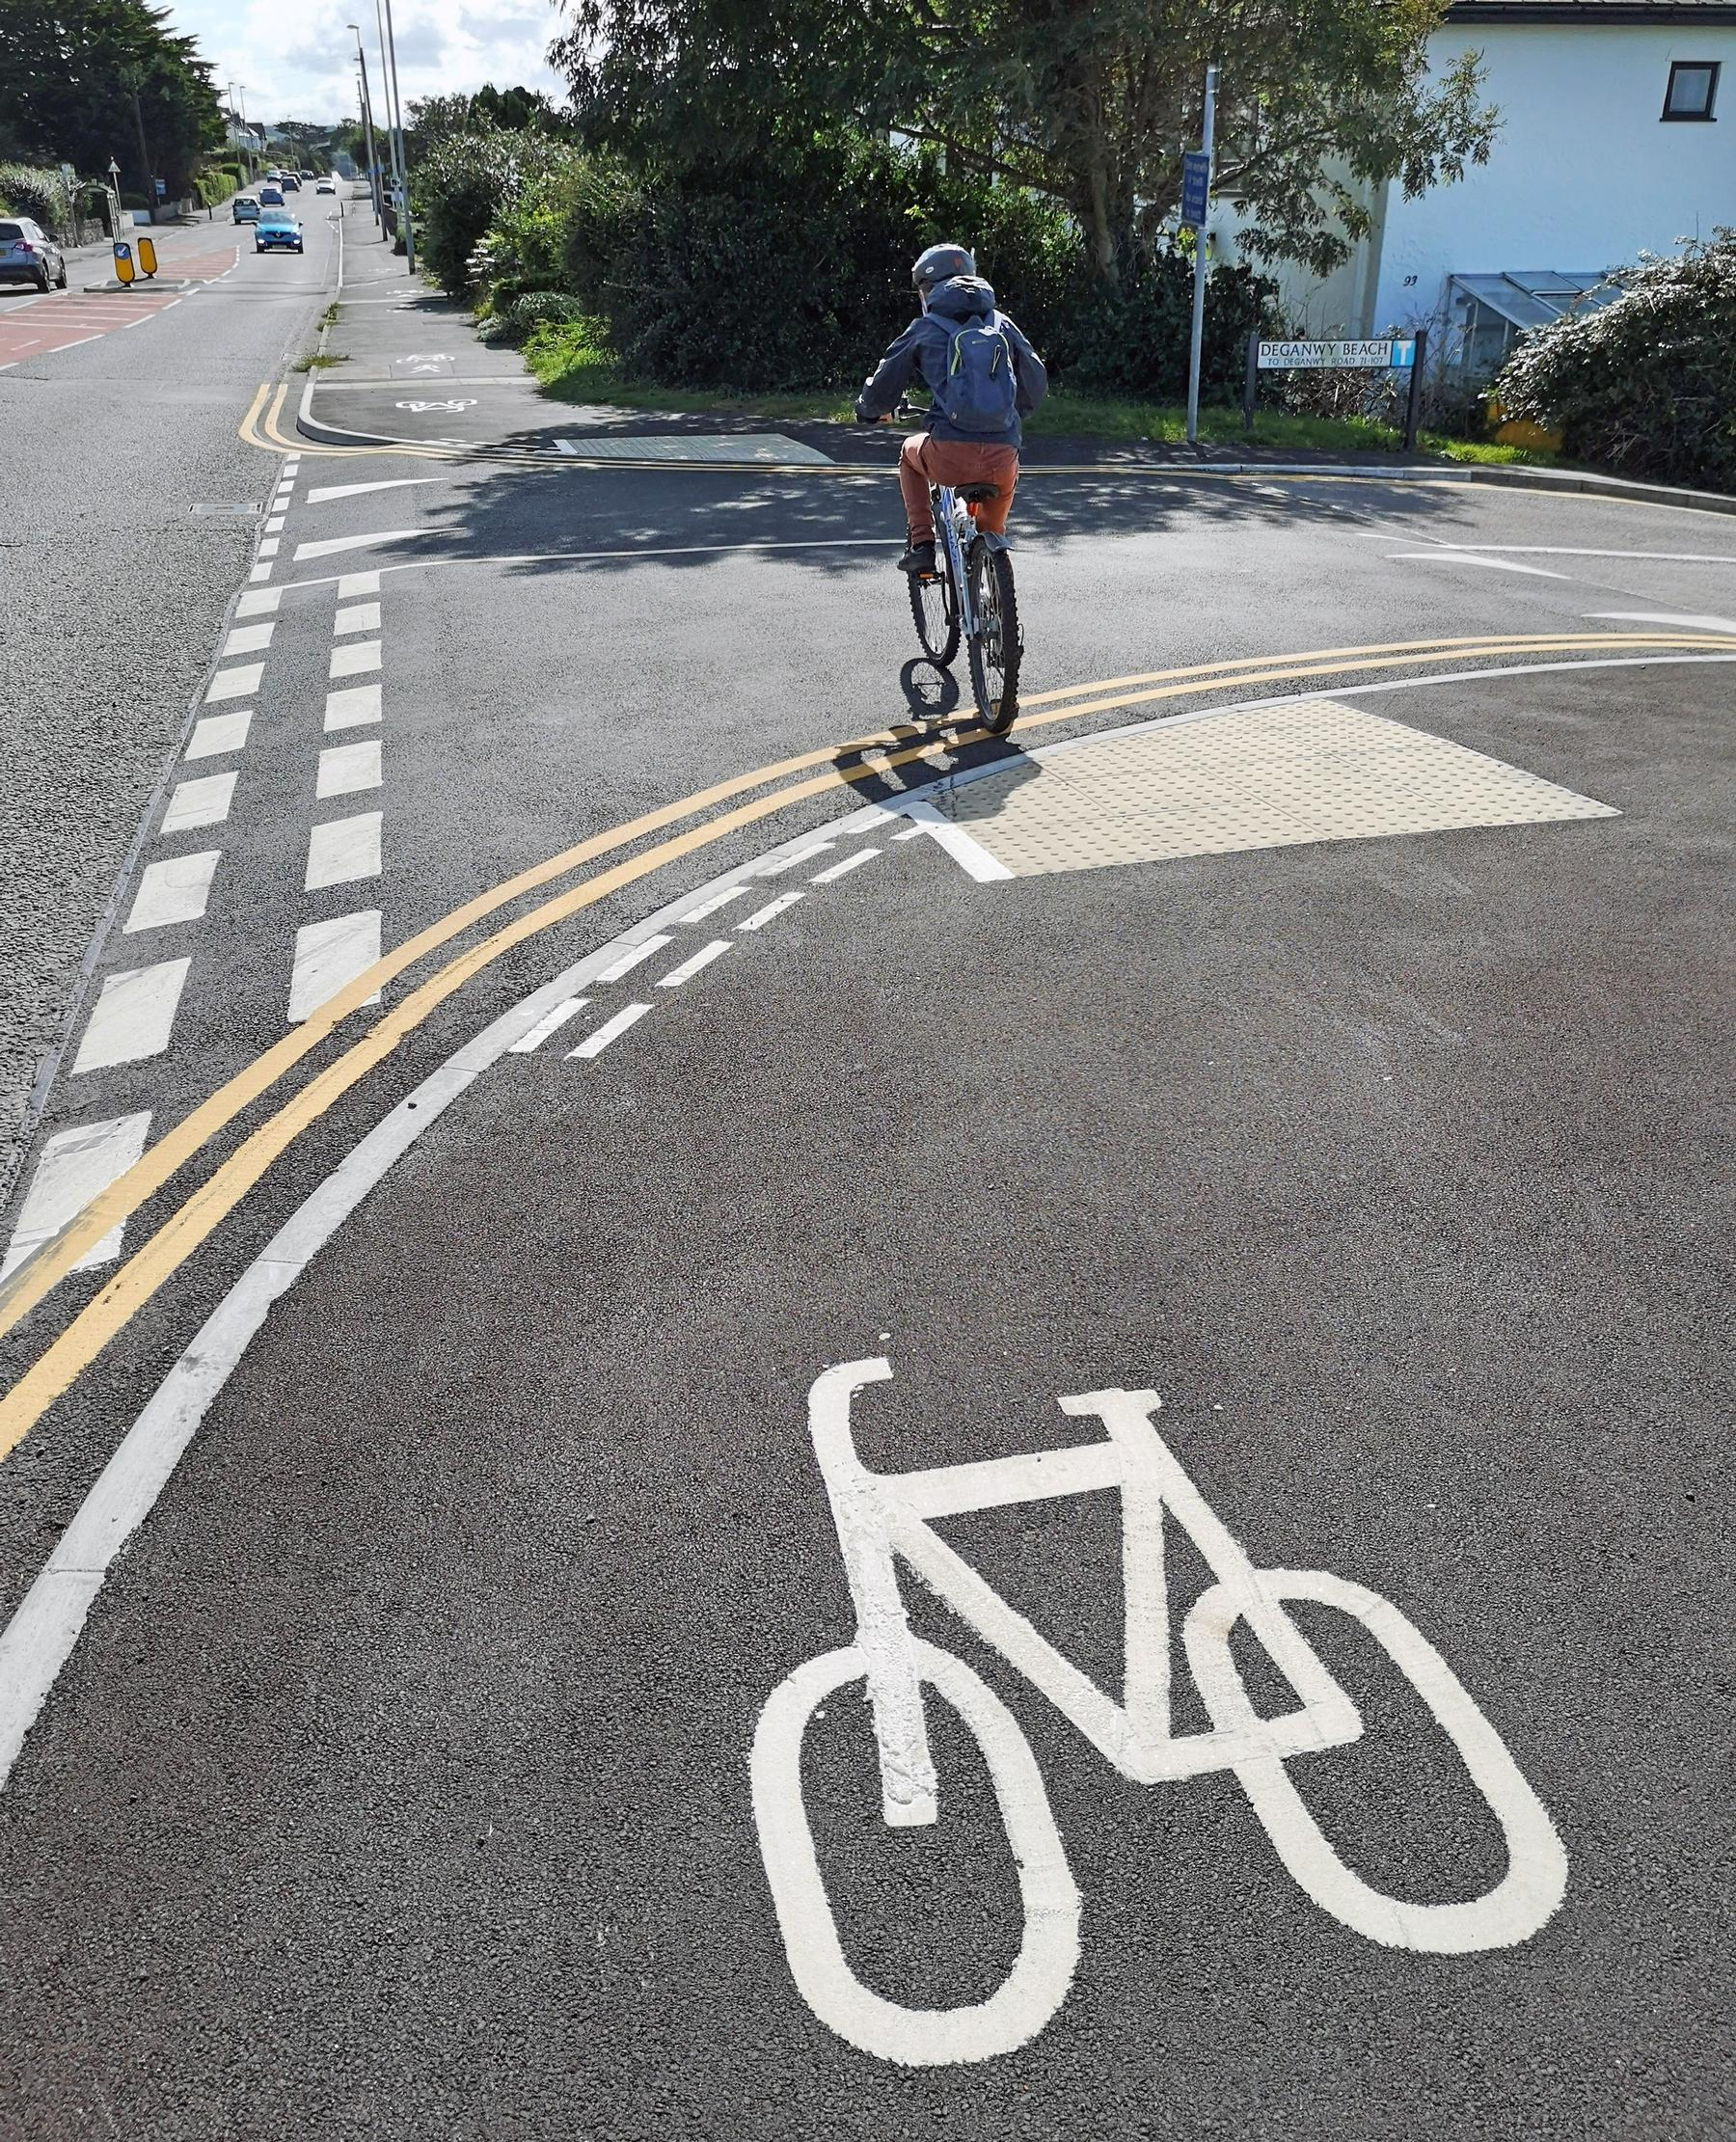 A newly installed active travel route in Conwy county borough